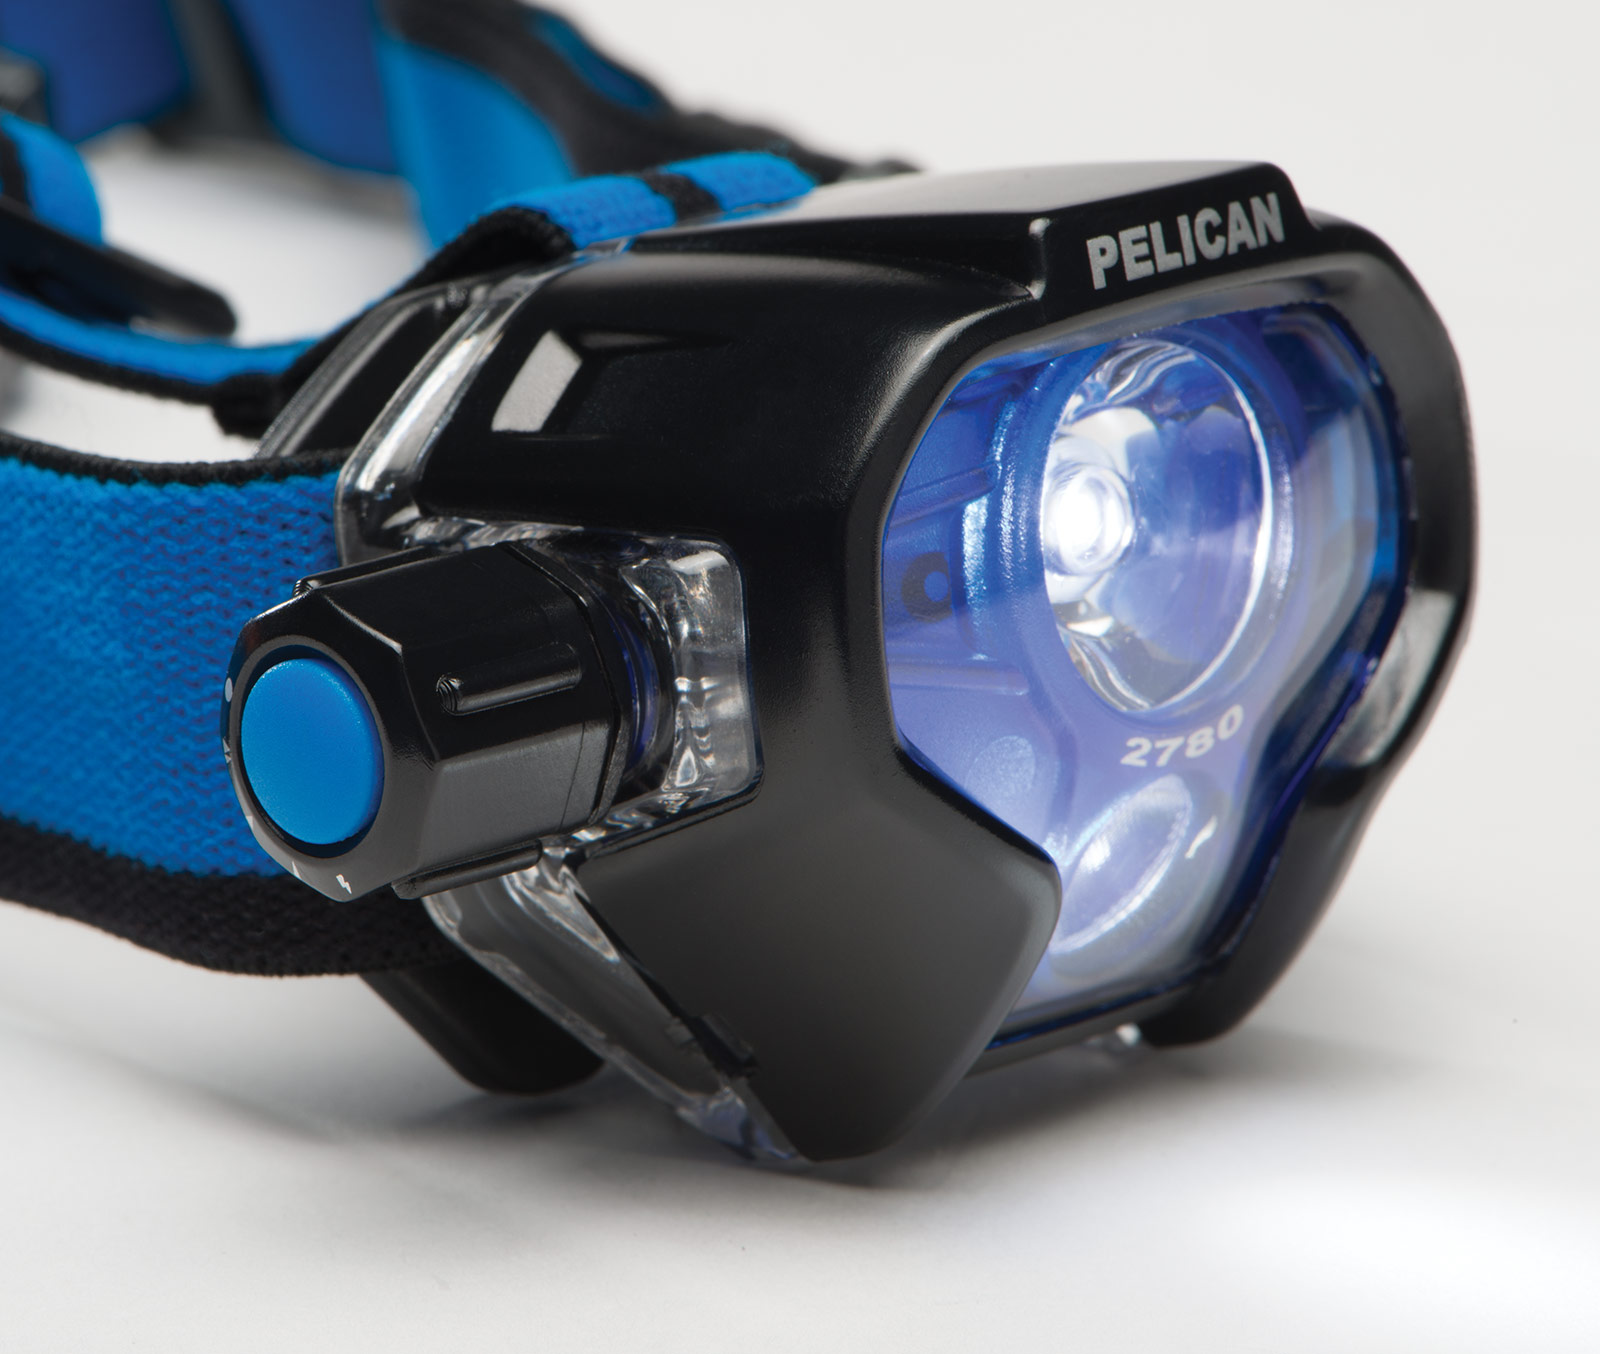 pelican 2780 downcast led headlamp